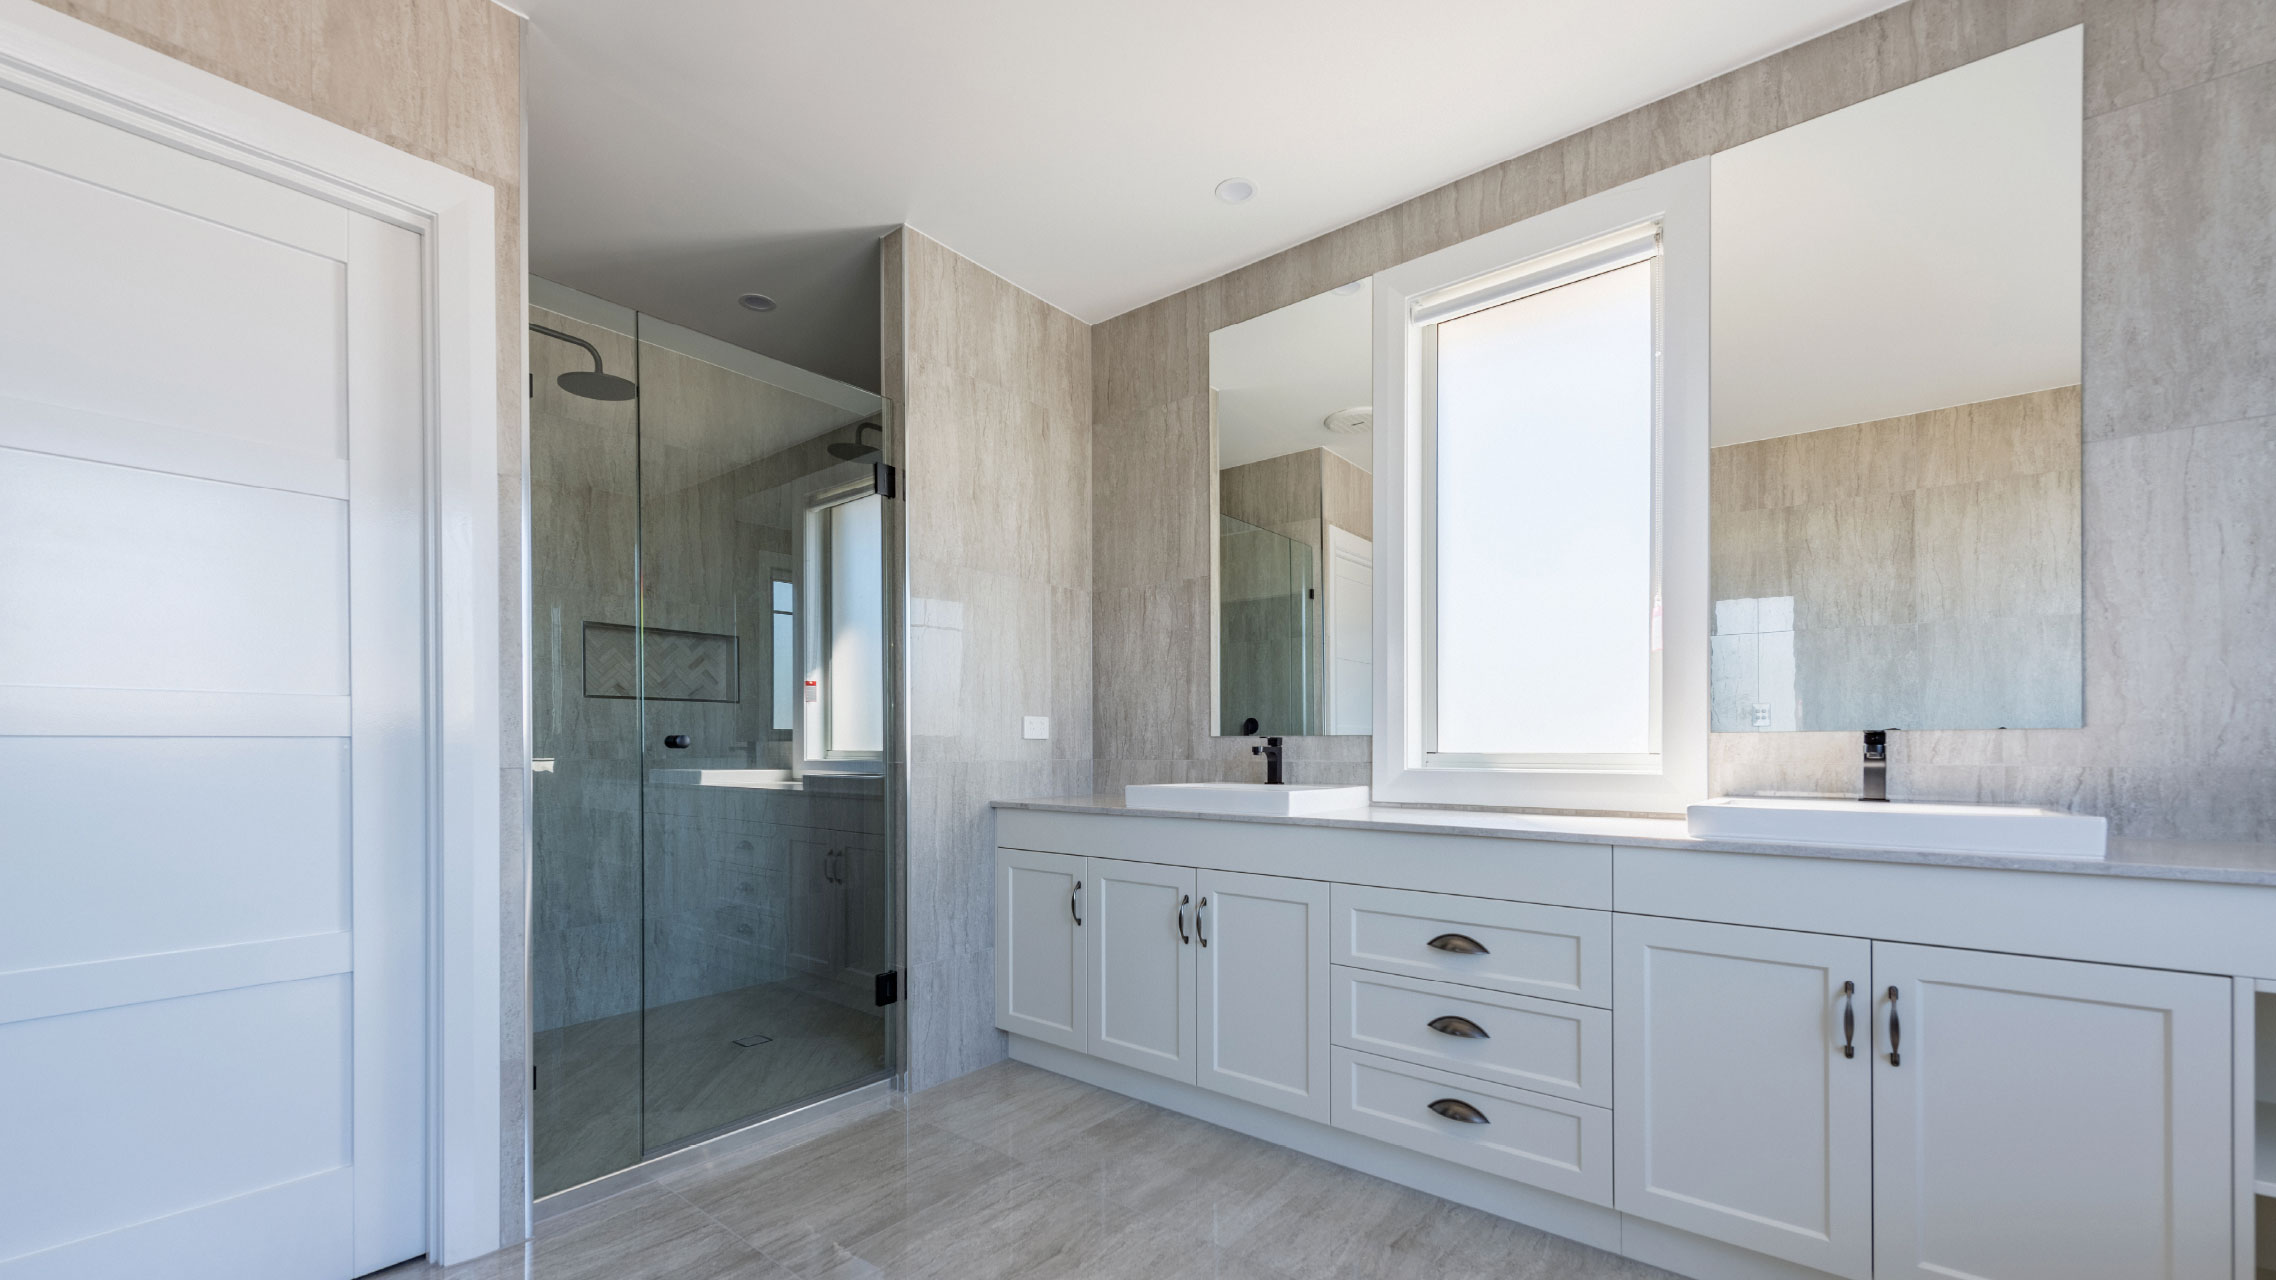 Two Bathroom Mirrors next to a fixed window